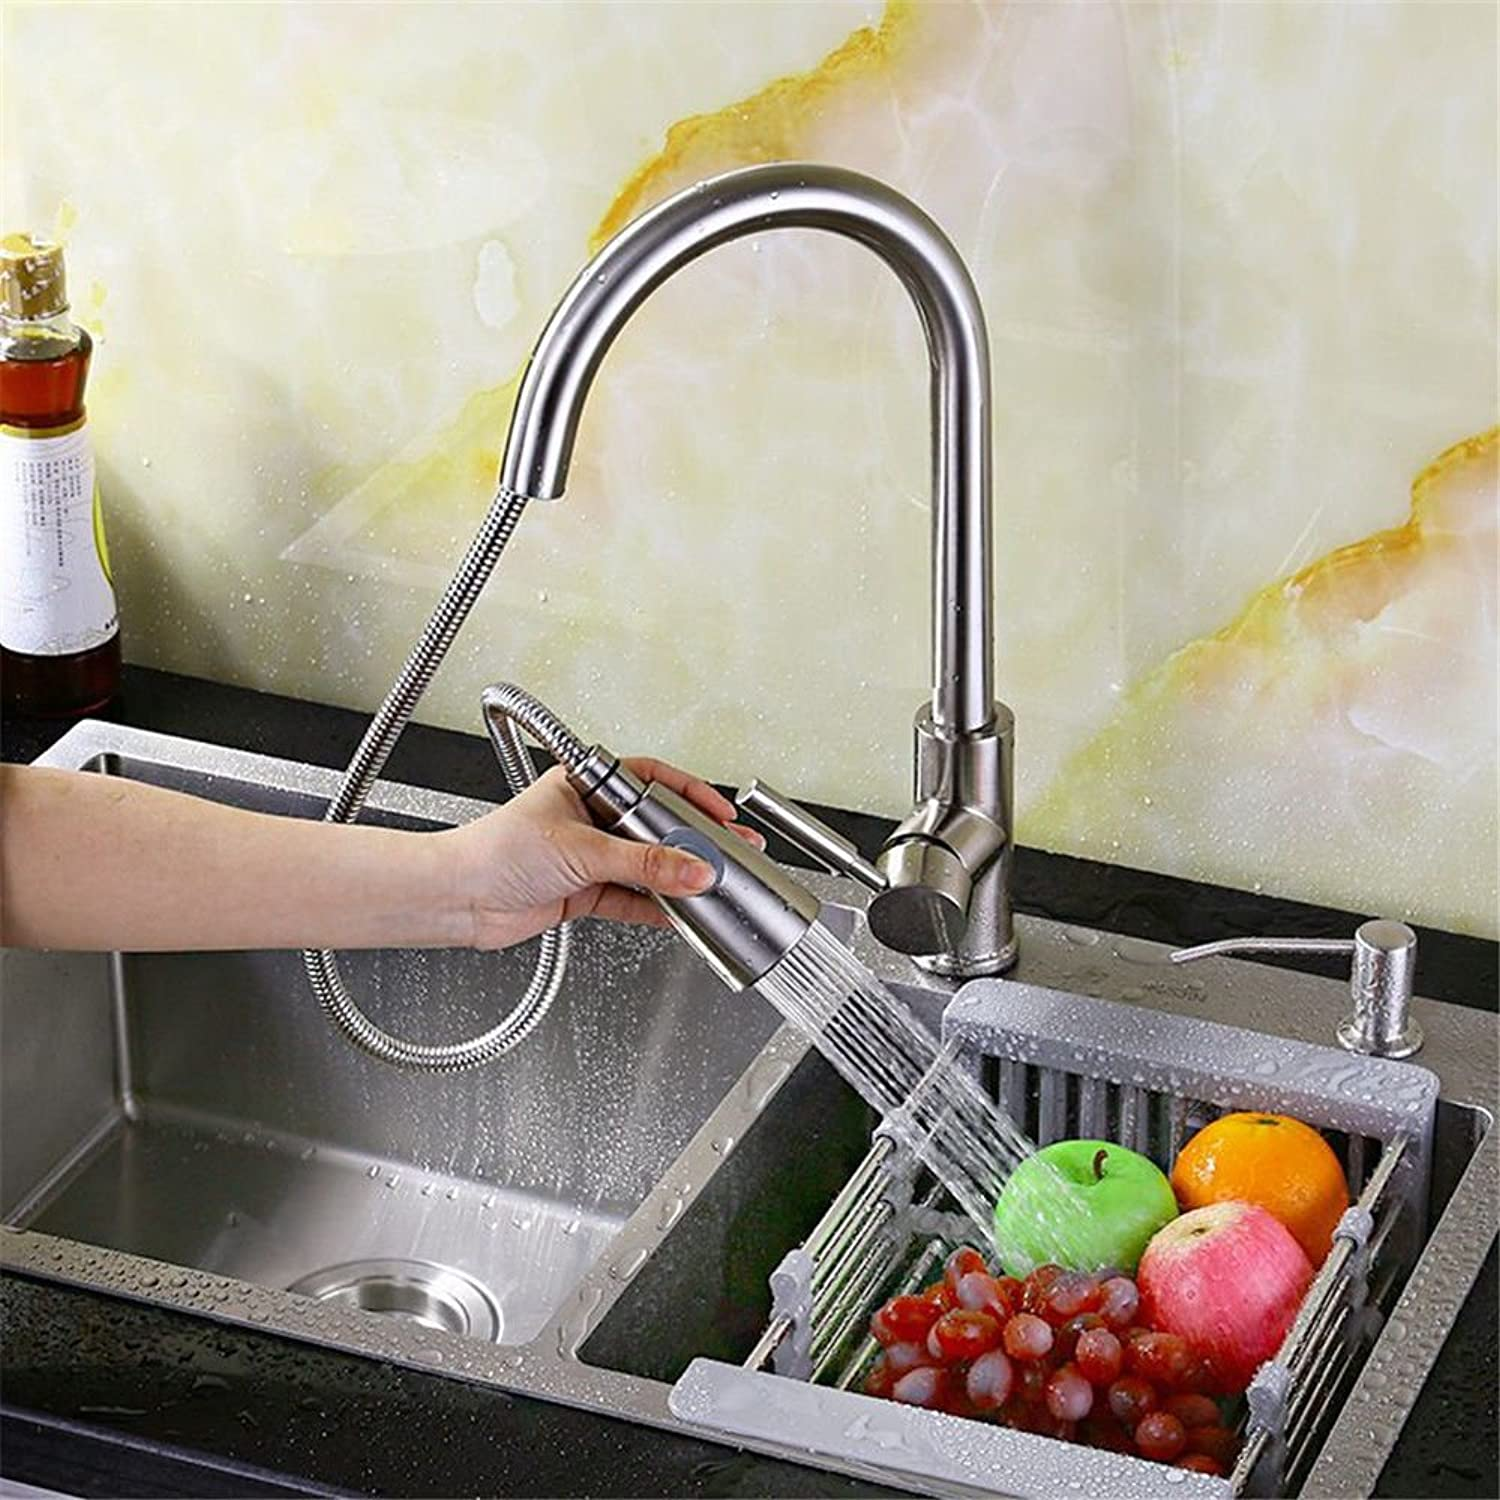 Commercial Single Lever Pull Down Kitchen Sink Faucet Brass Constructed Polished ?Pull-Out Faucet Hot and Cold Kitchen Sink Full Copper Telescopic Basin redating Sink Retro Sink Faucet